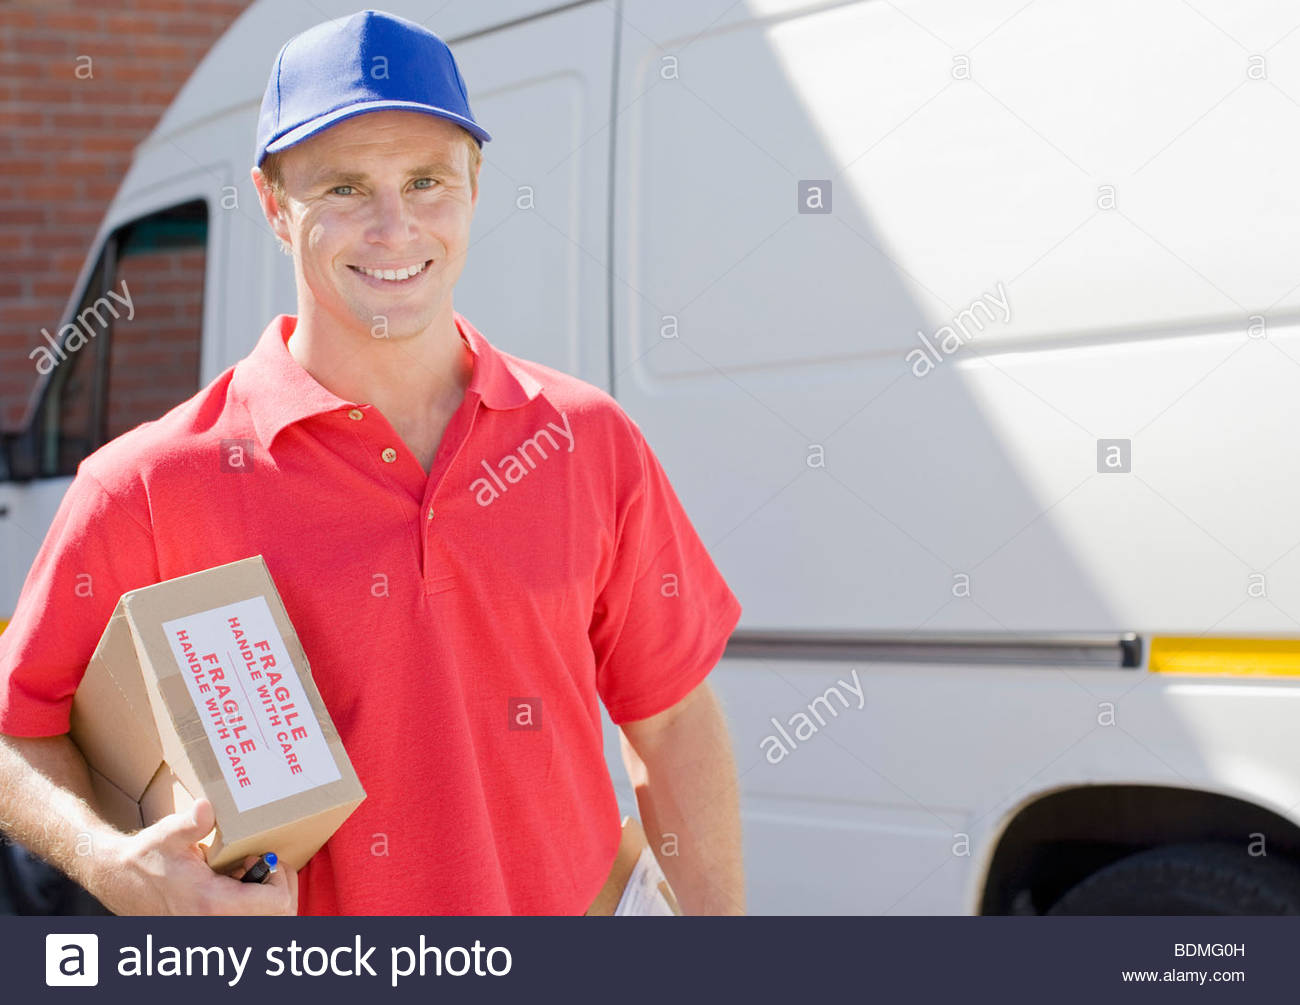 Delivery man holding cardboard box - Stock Image